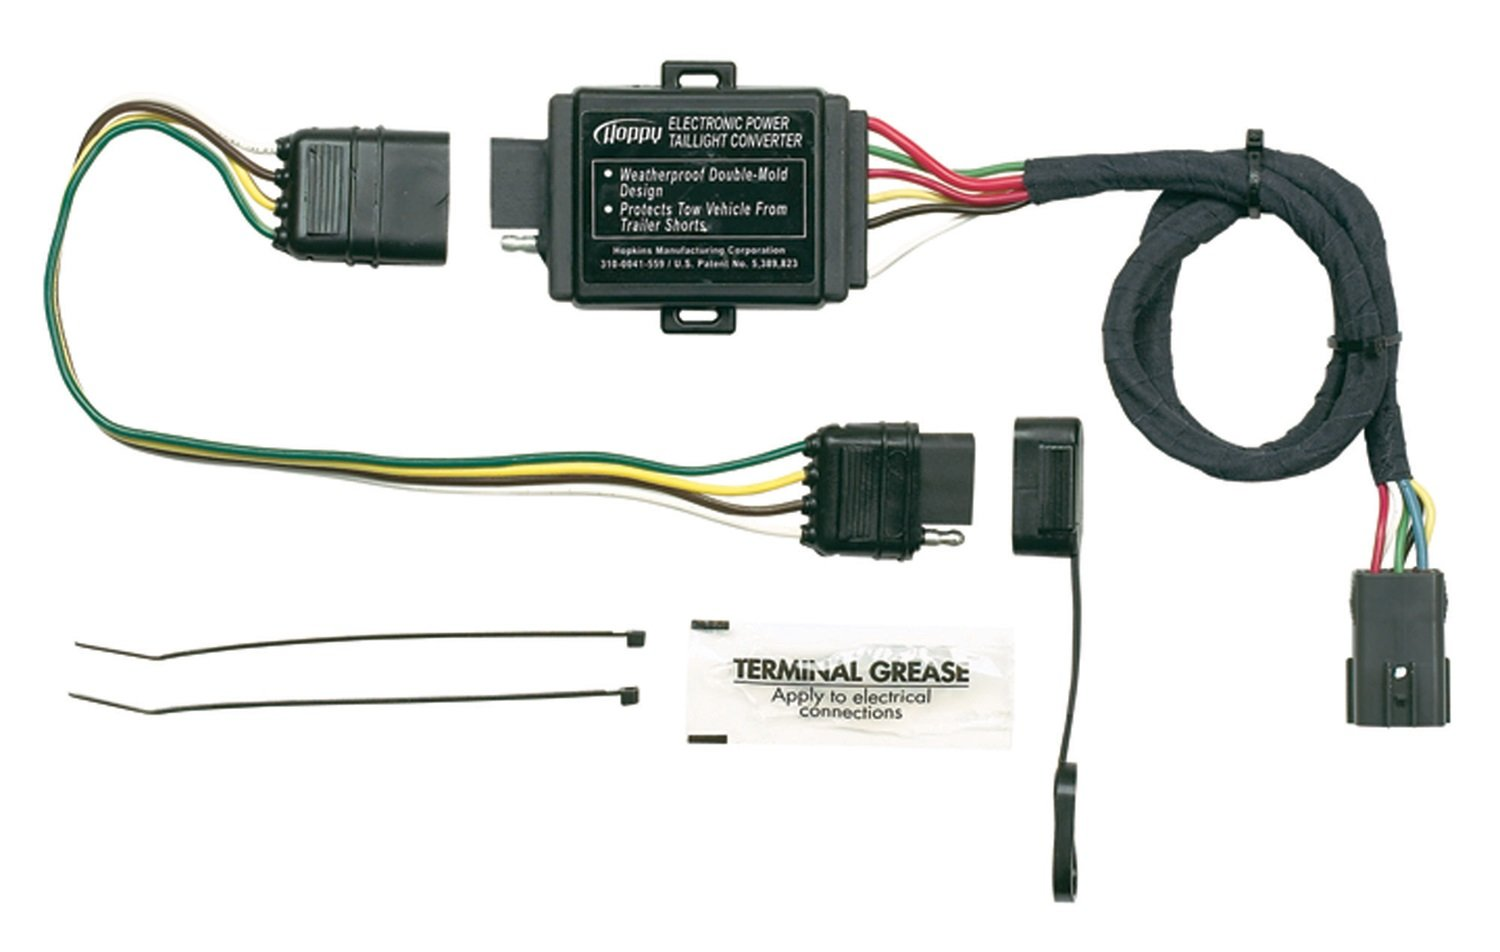 61dKvjPegbL._SL1500_ amazon com hopkins 11143875 plug in simple vehicle to trailer trailer hitch wiring harness at gsmportal.co